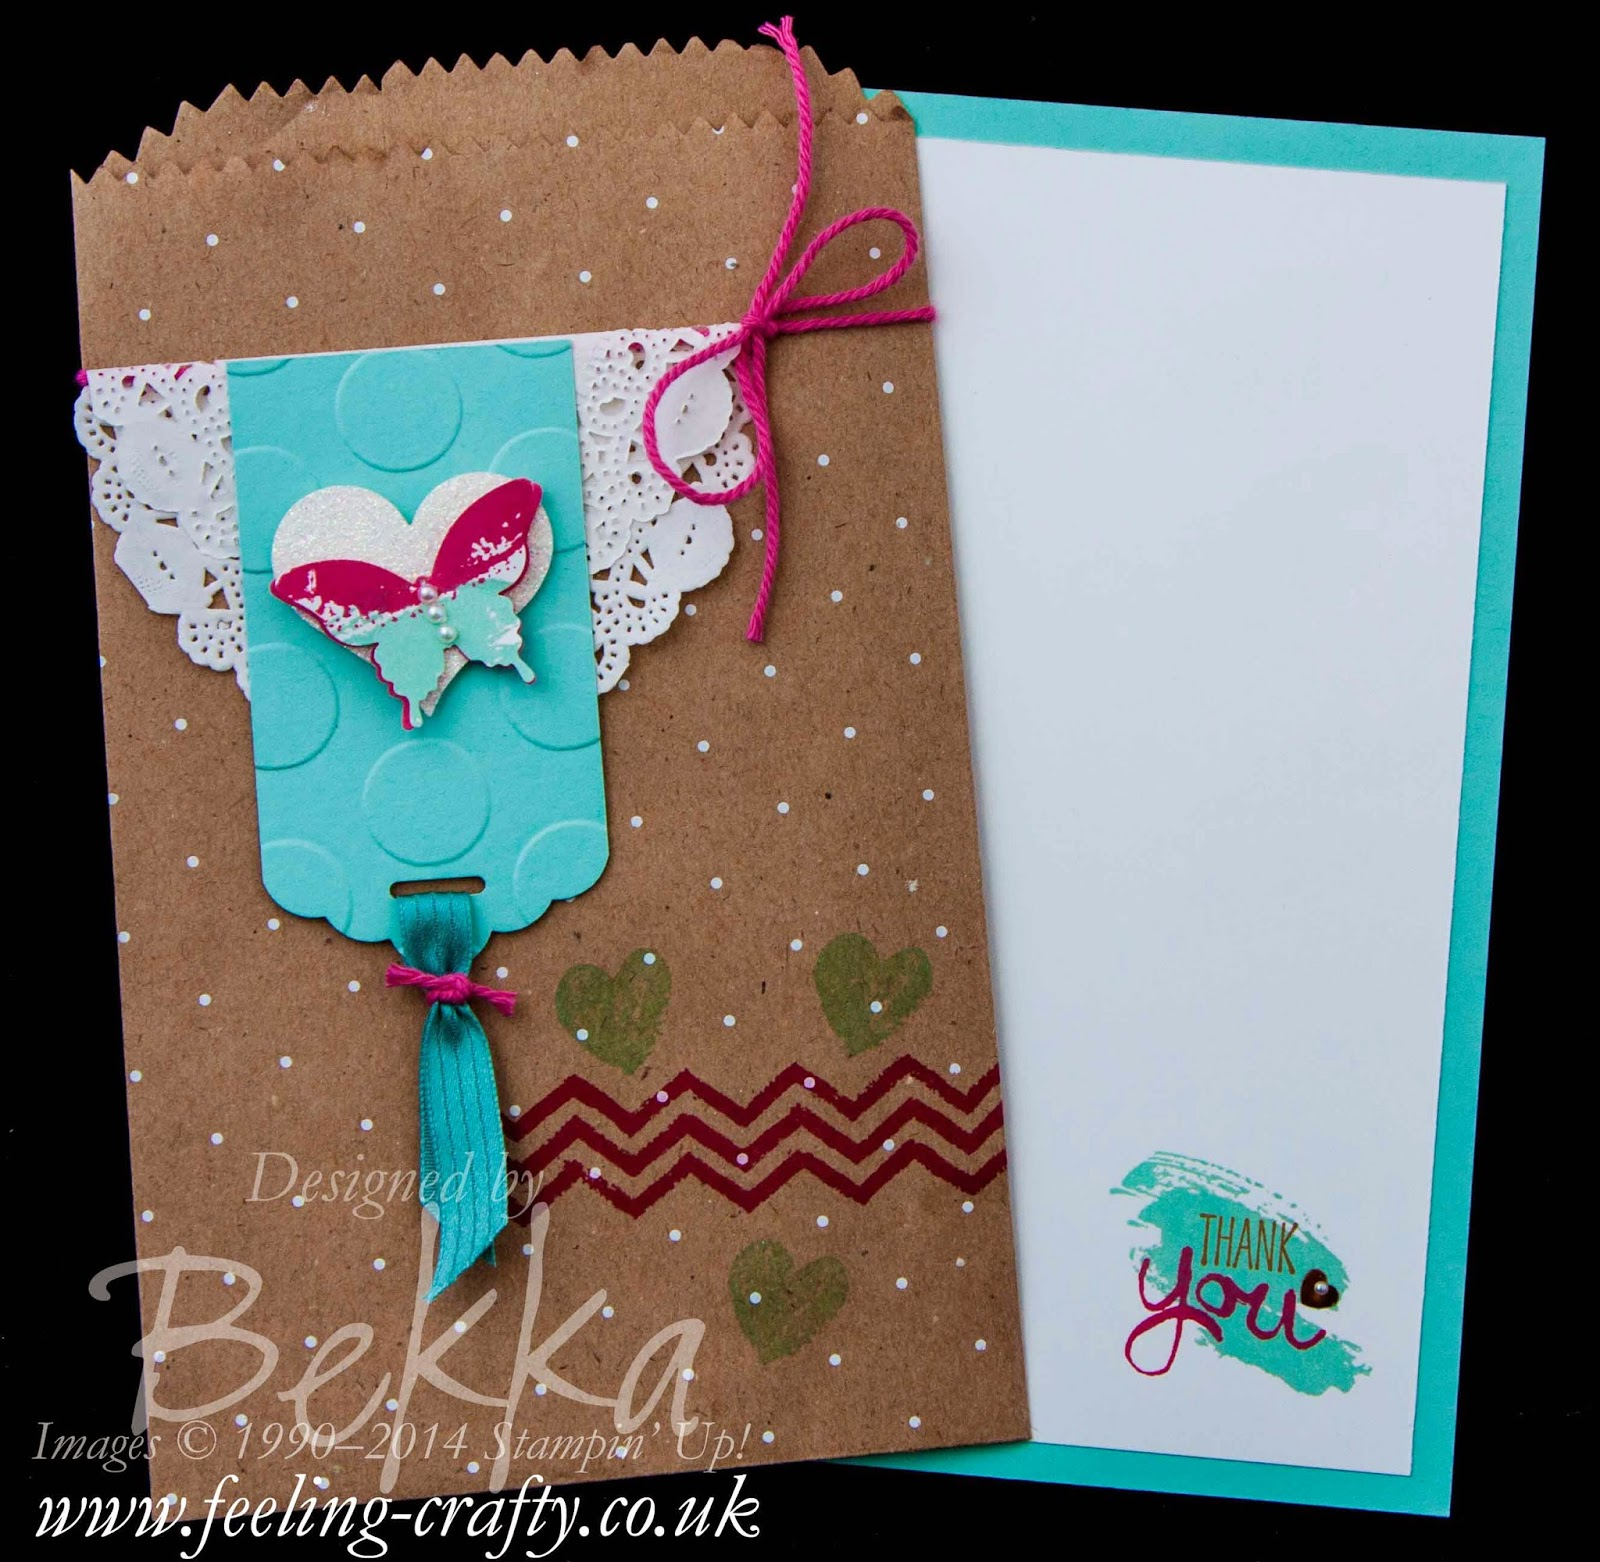 A Special Work of Art Thank You Card made using Stampin' Up! Supplies bu UK Independent Demonstrator Bekka Prideaux